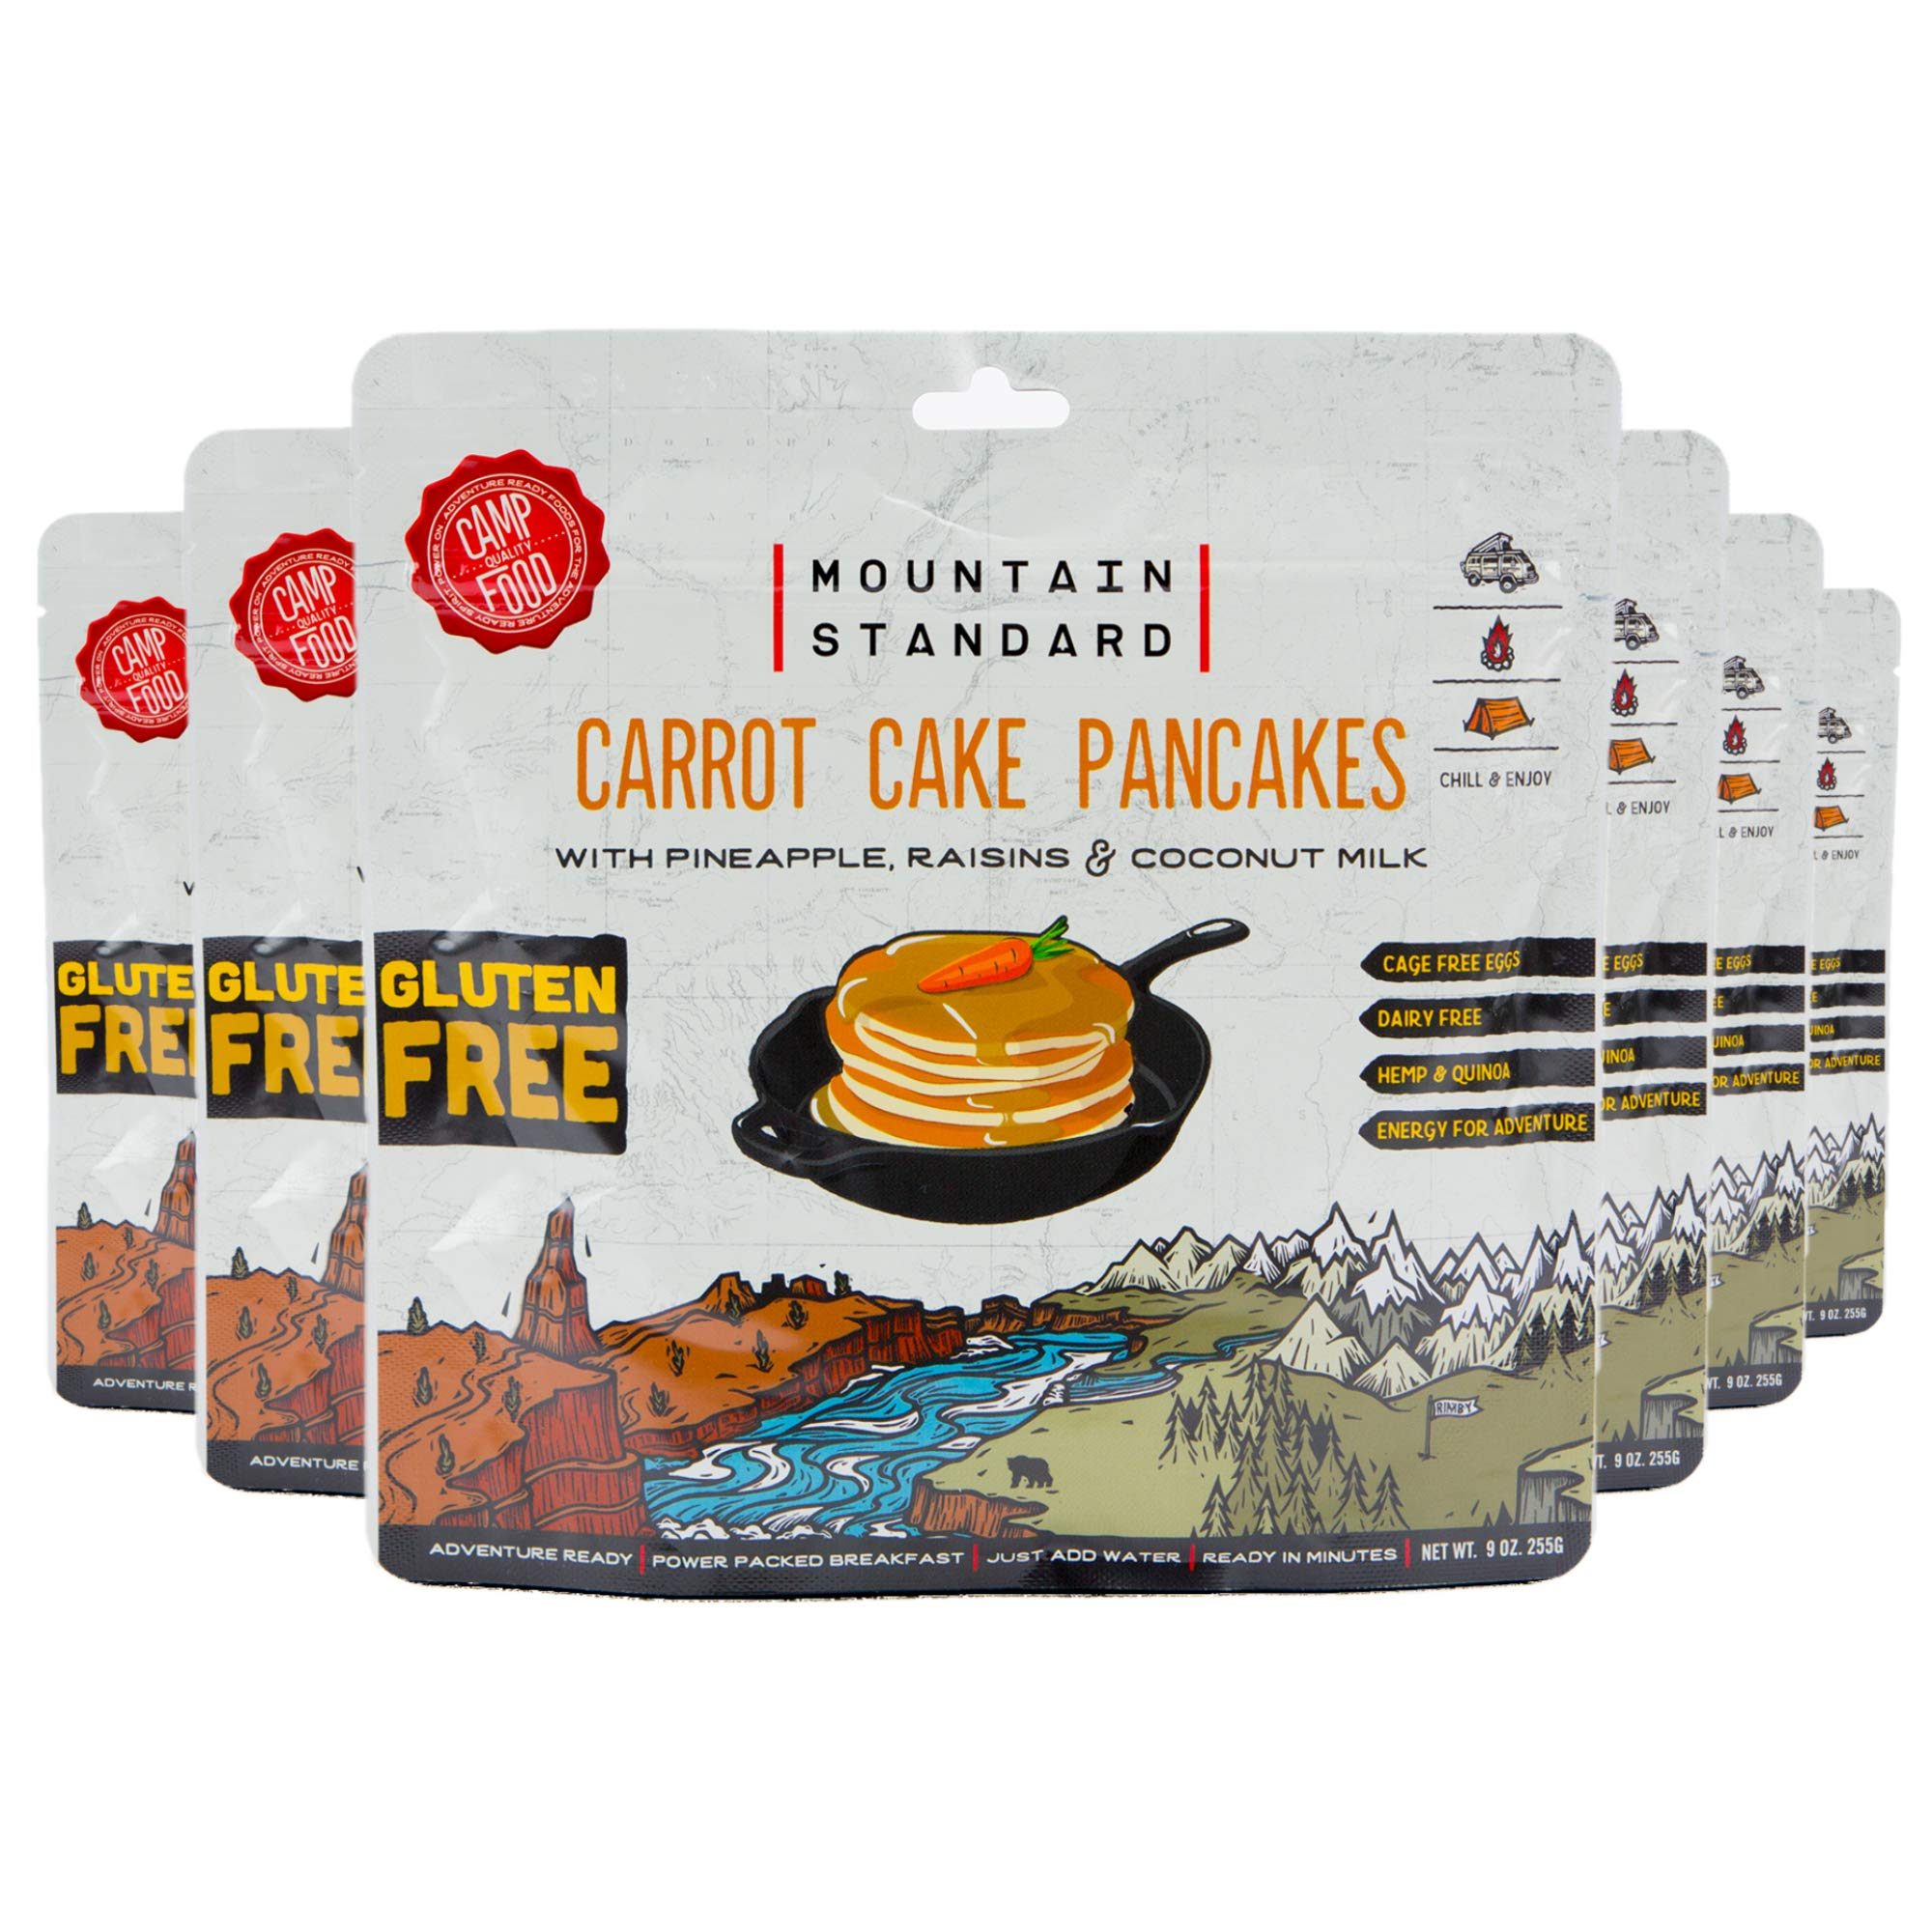 Carrot Cake Pancake Mix with Pineapple, Rasins & Coconut Milk, Gluten Free, Just Add Water, 22 Plant Based Proteins/Serving, 9 oz/pouch, 6 Count by Mountain Standard Foods